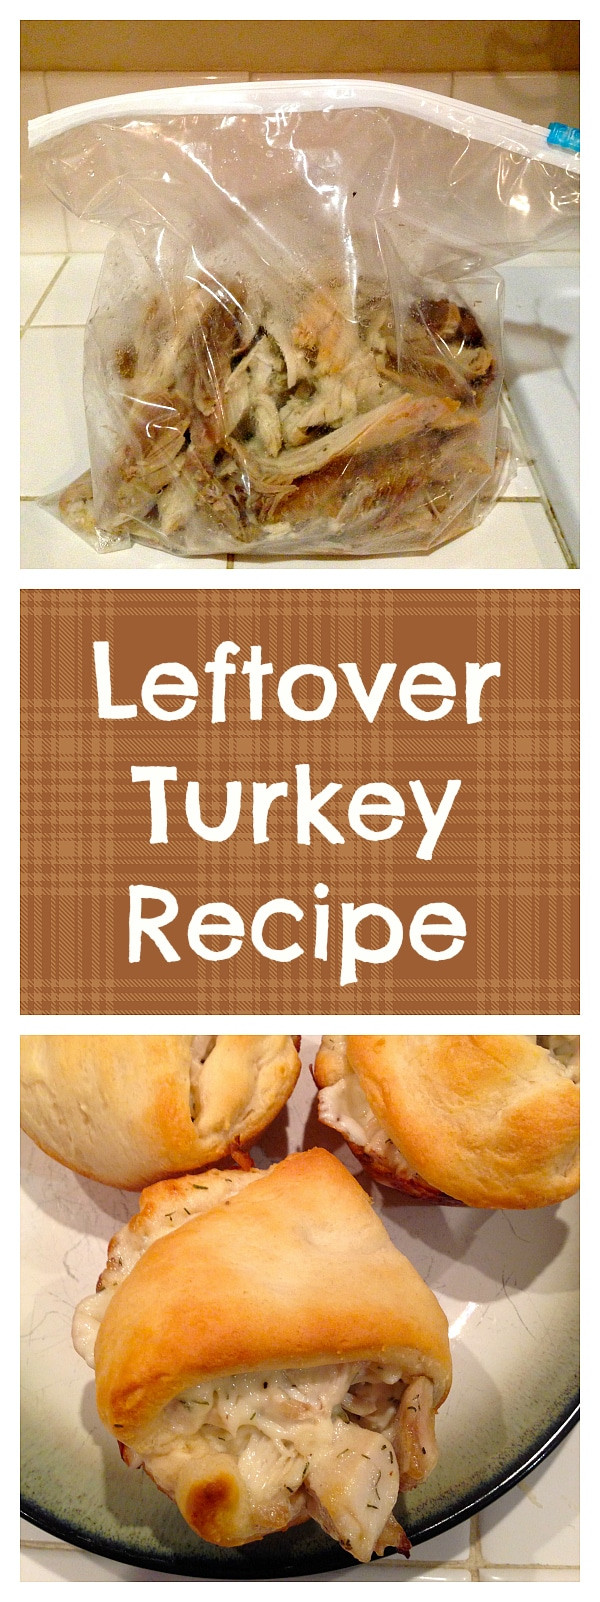 Left Over Thanksgiving Turkey Recipes  Best Leftover Turkey Recipe · The Typical Mom